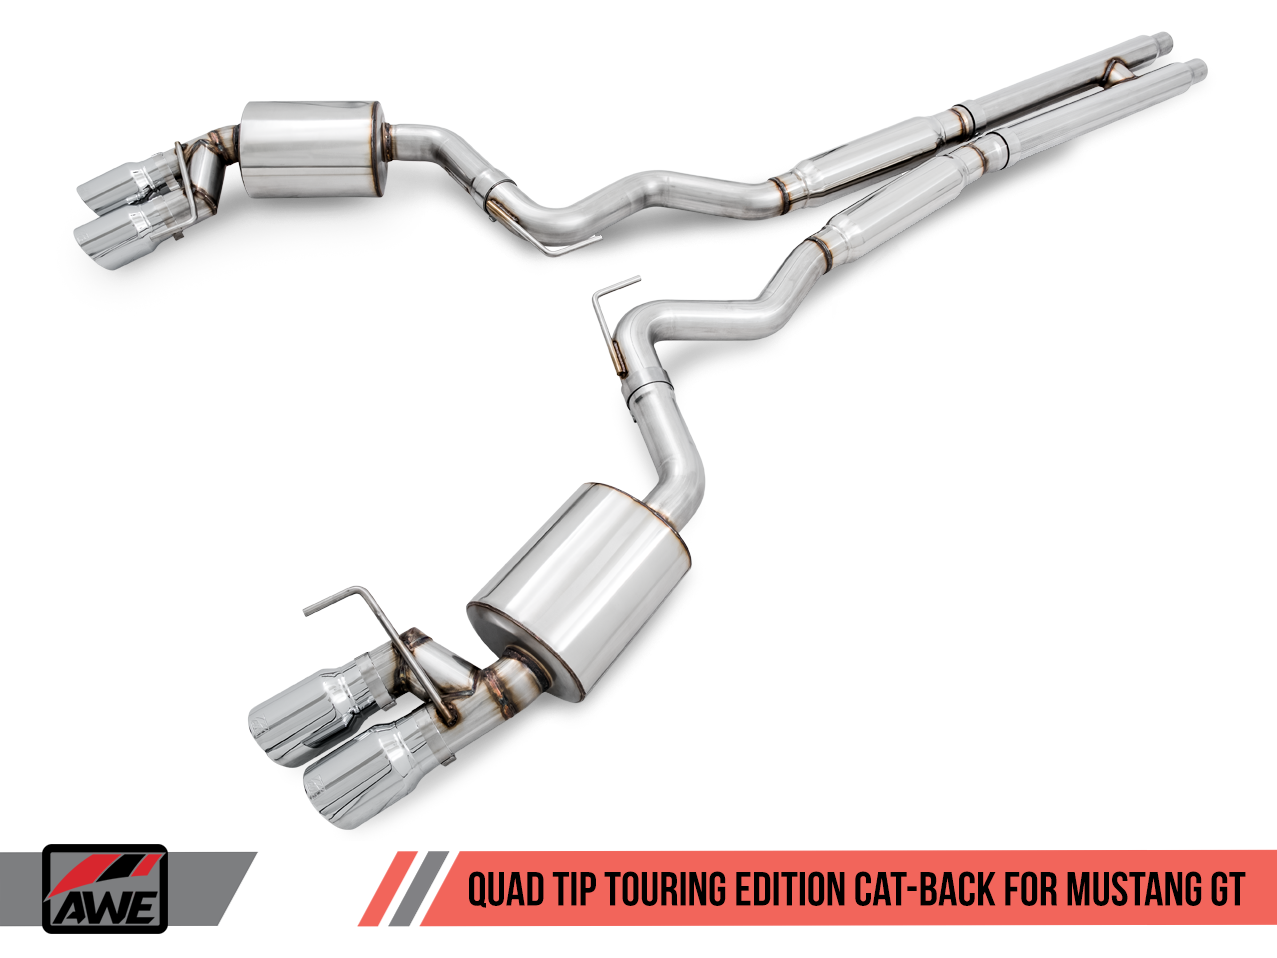 AWE Touring Edition Cat-back Exhaust for 15-17 S550 Mustang GT - Quad Outlet - No Tips (GT350 Valance) 3015-41006